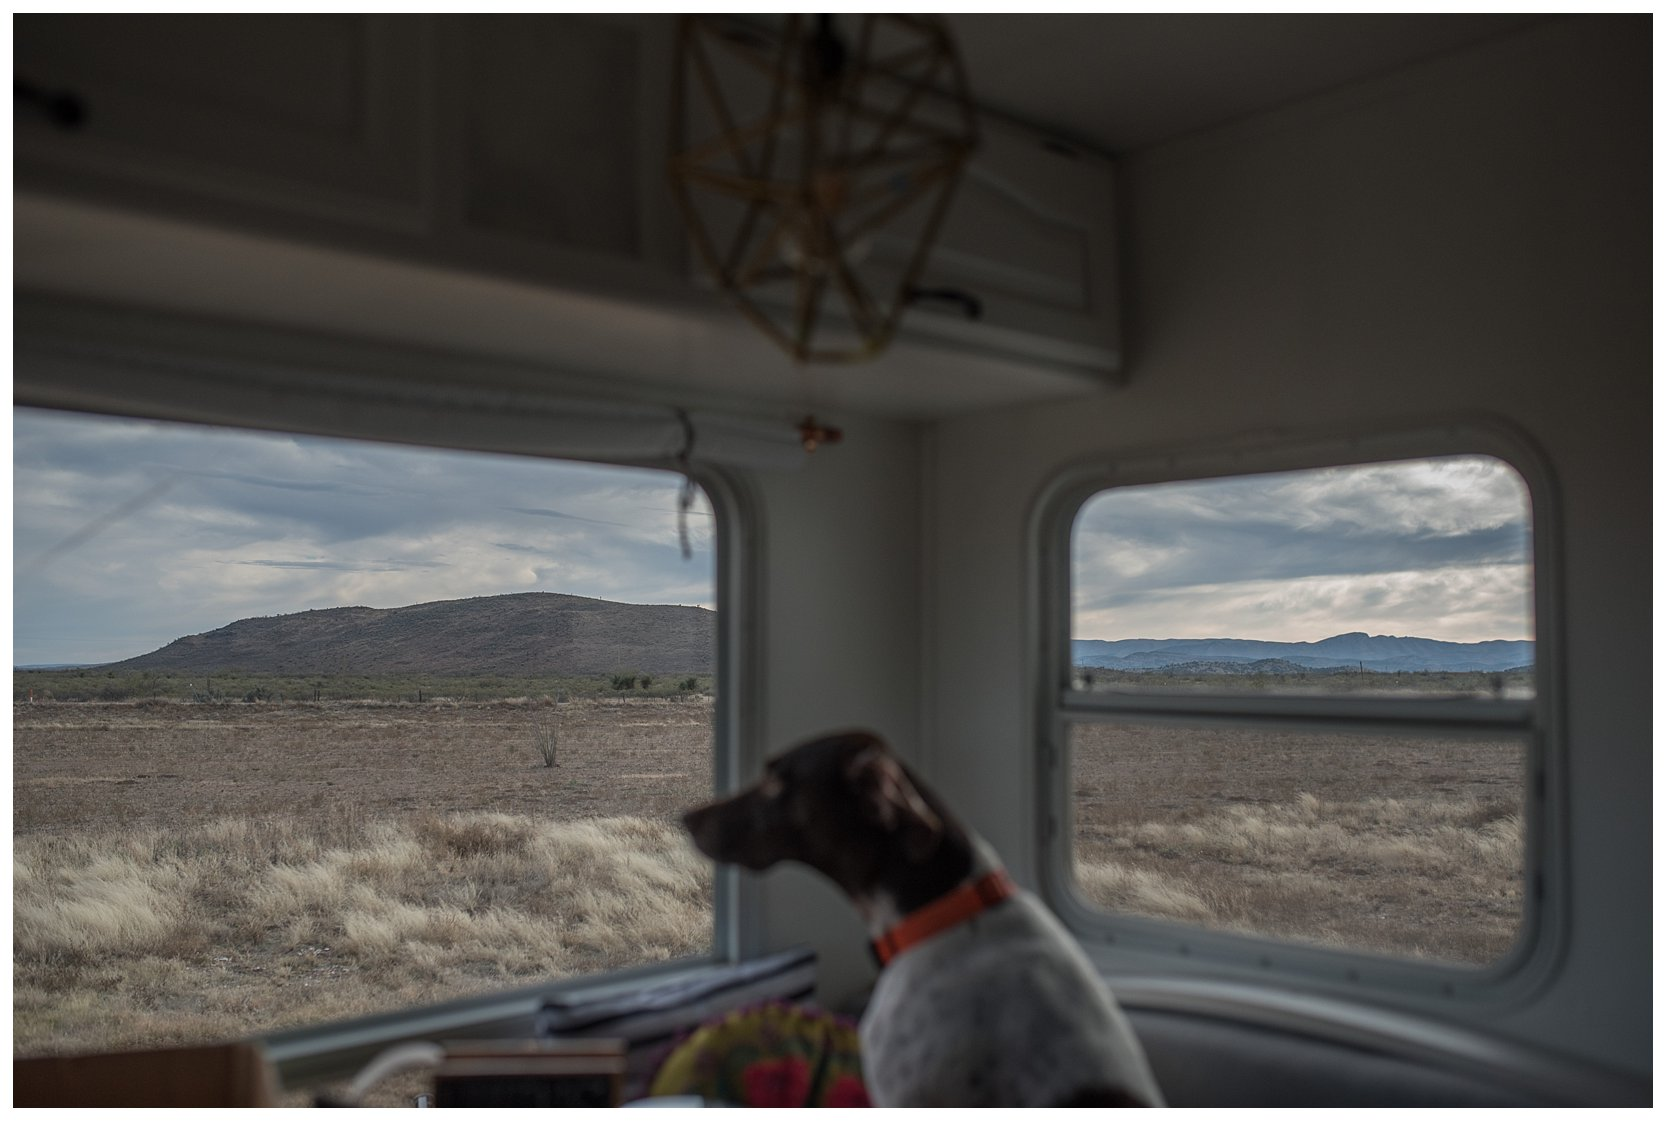 Dog looking out the window of a camper